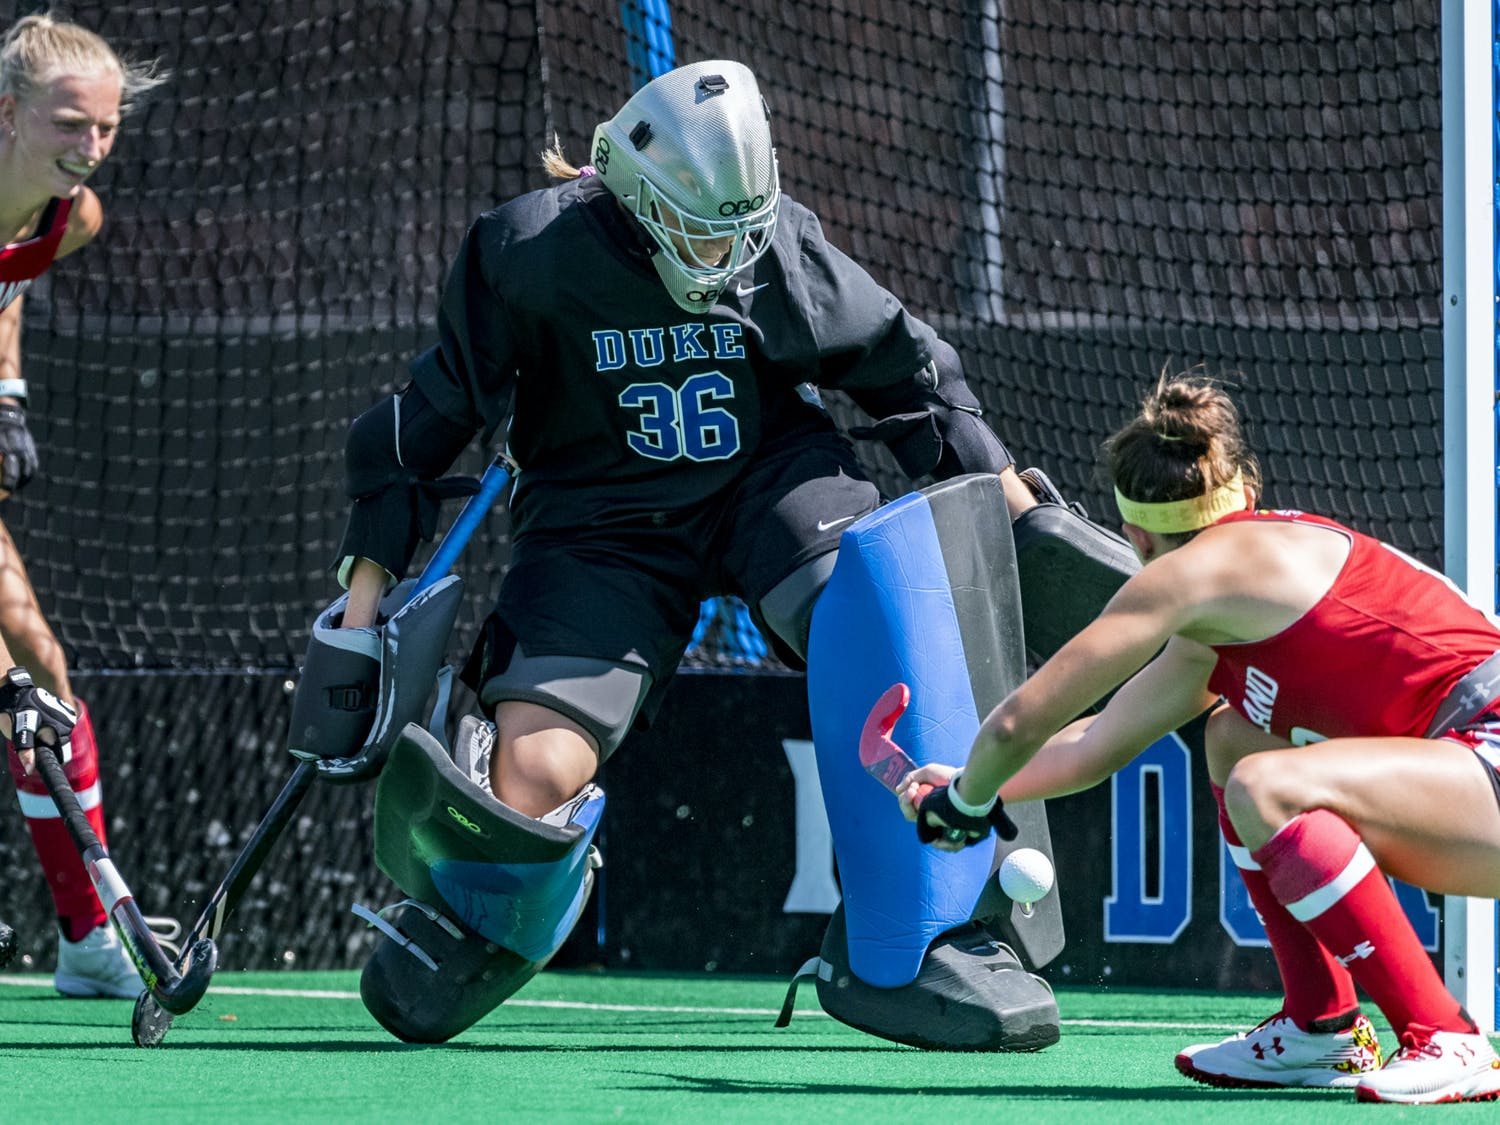 Goalie Grace Brightbill came in during the second half of the Maryland game and recorded four saves.